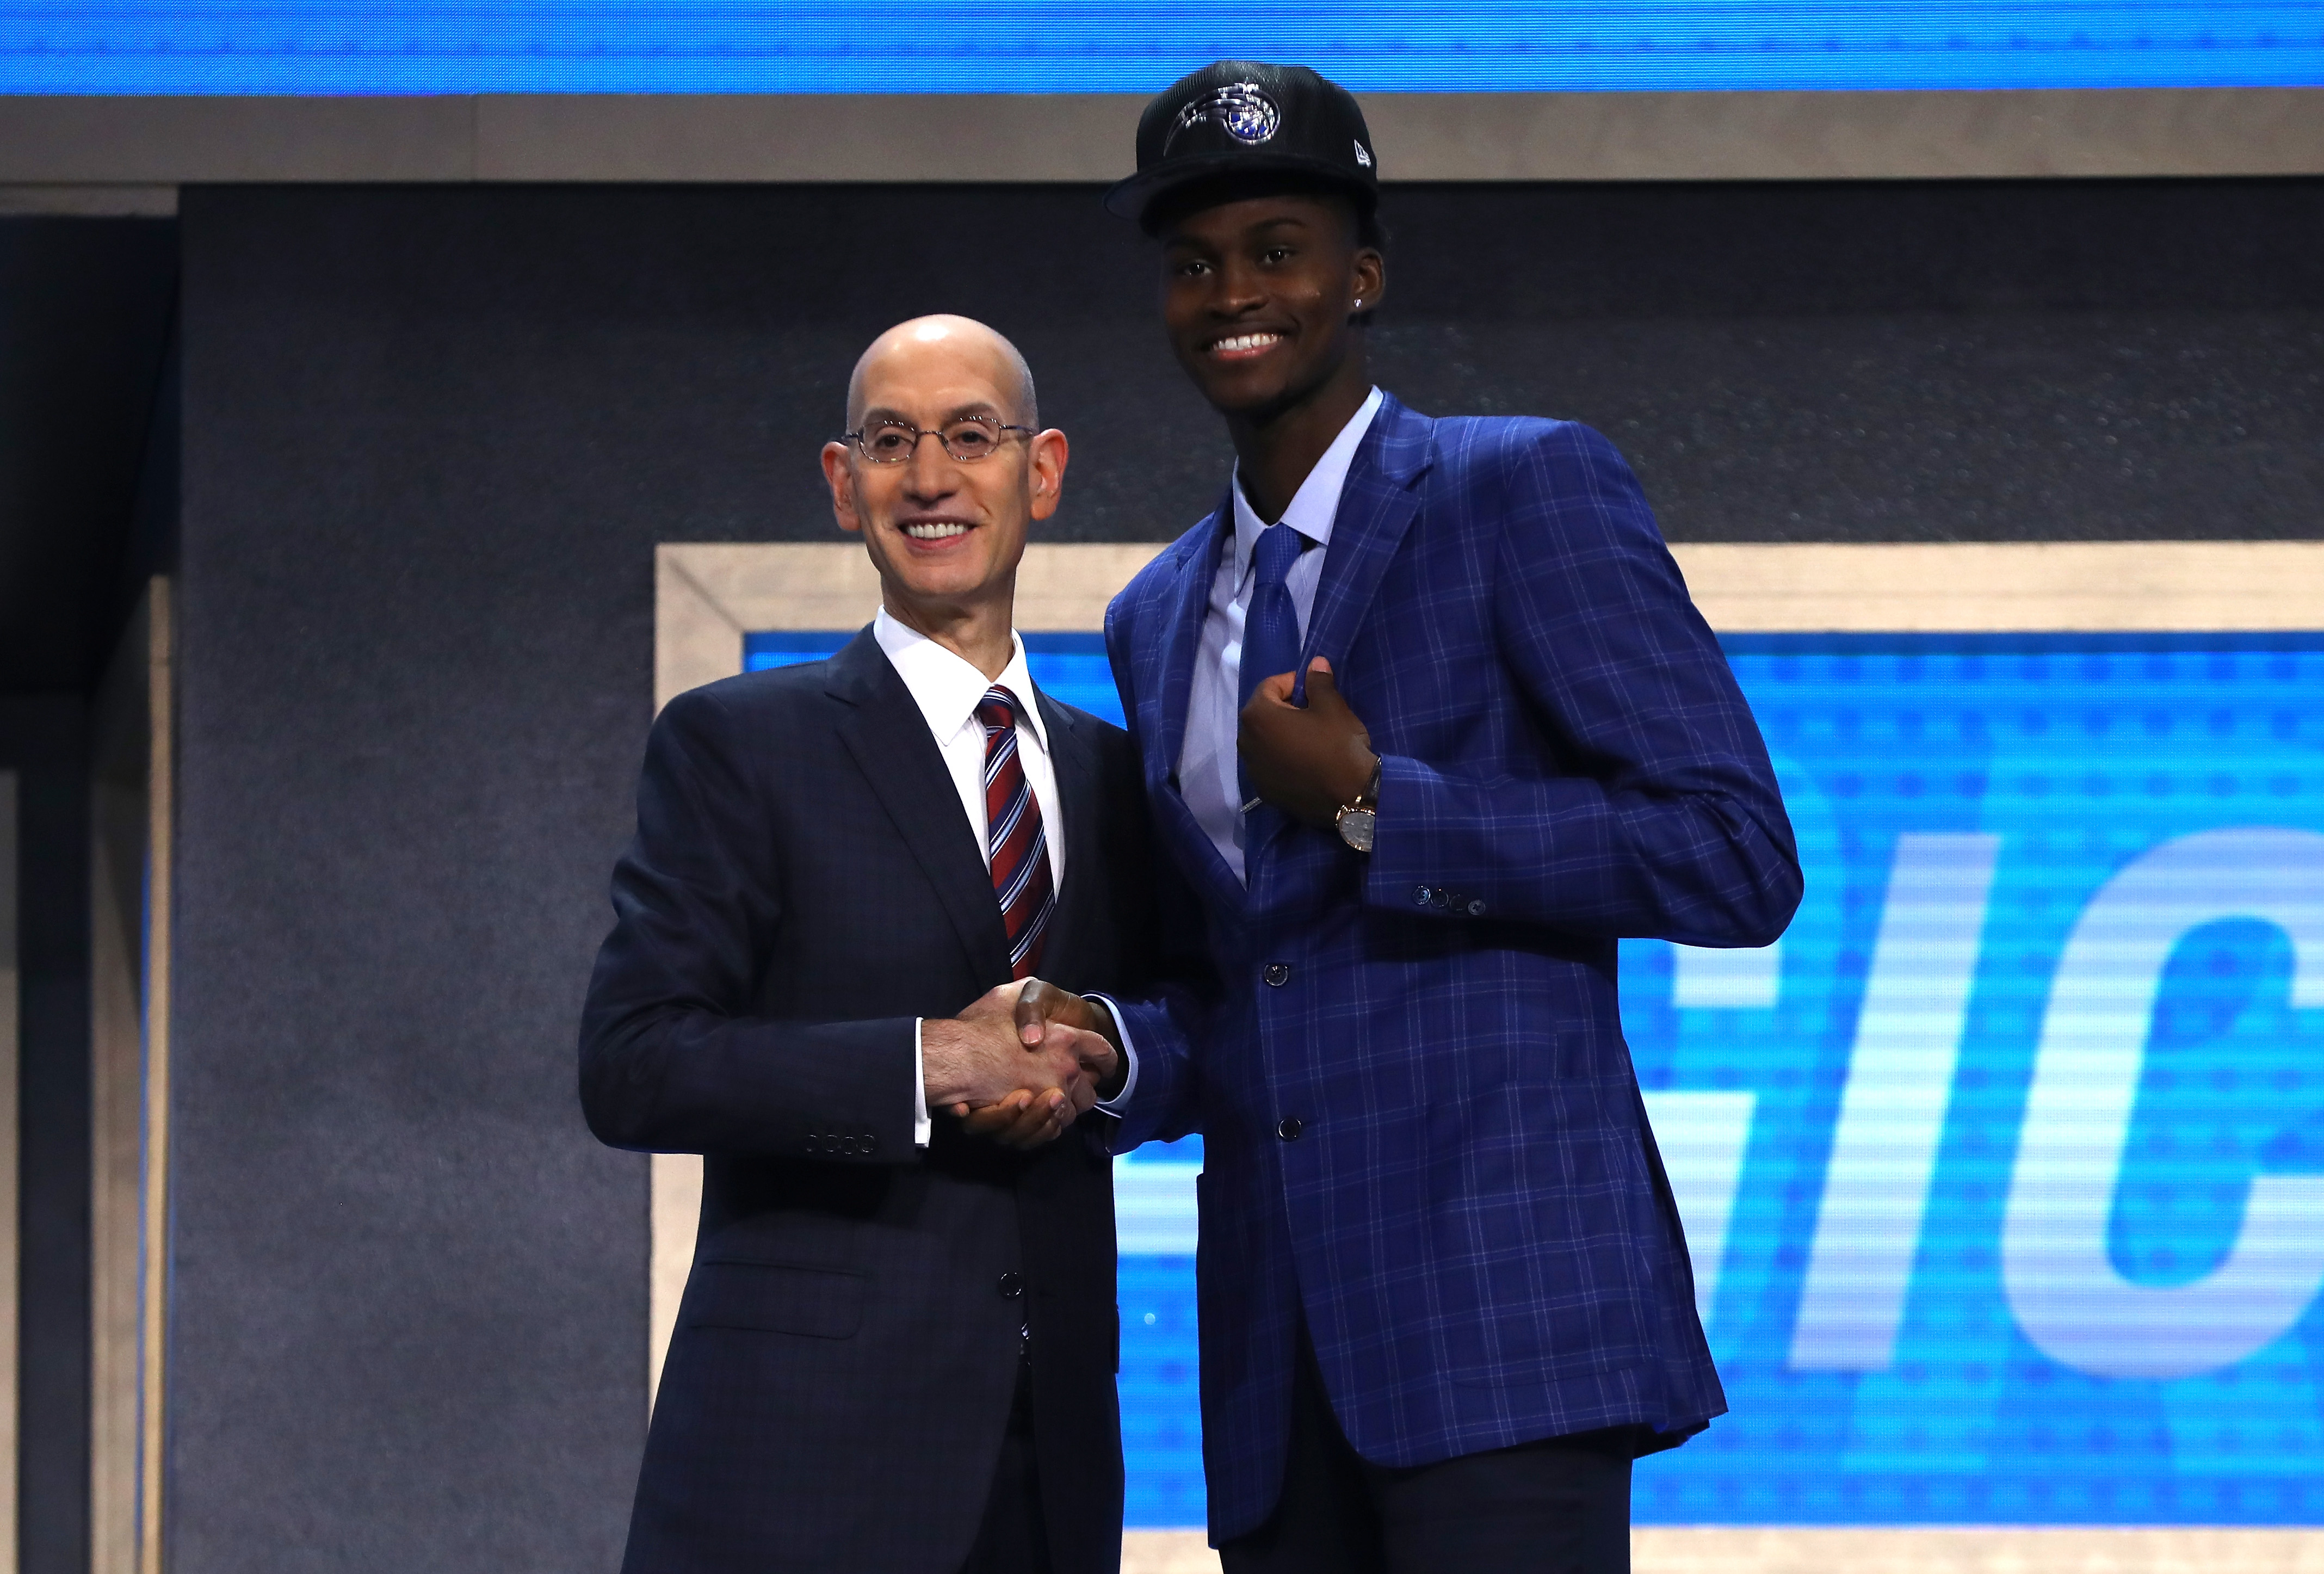 699982522-2017-nba-draft.jpg